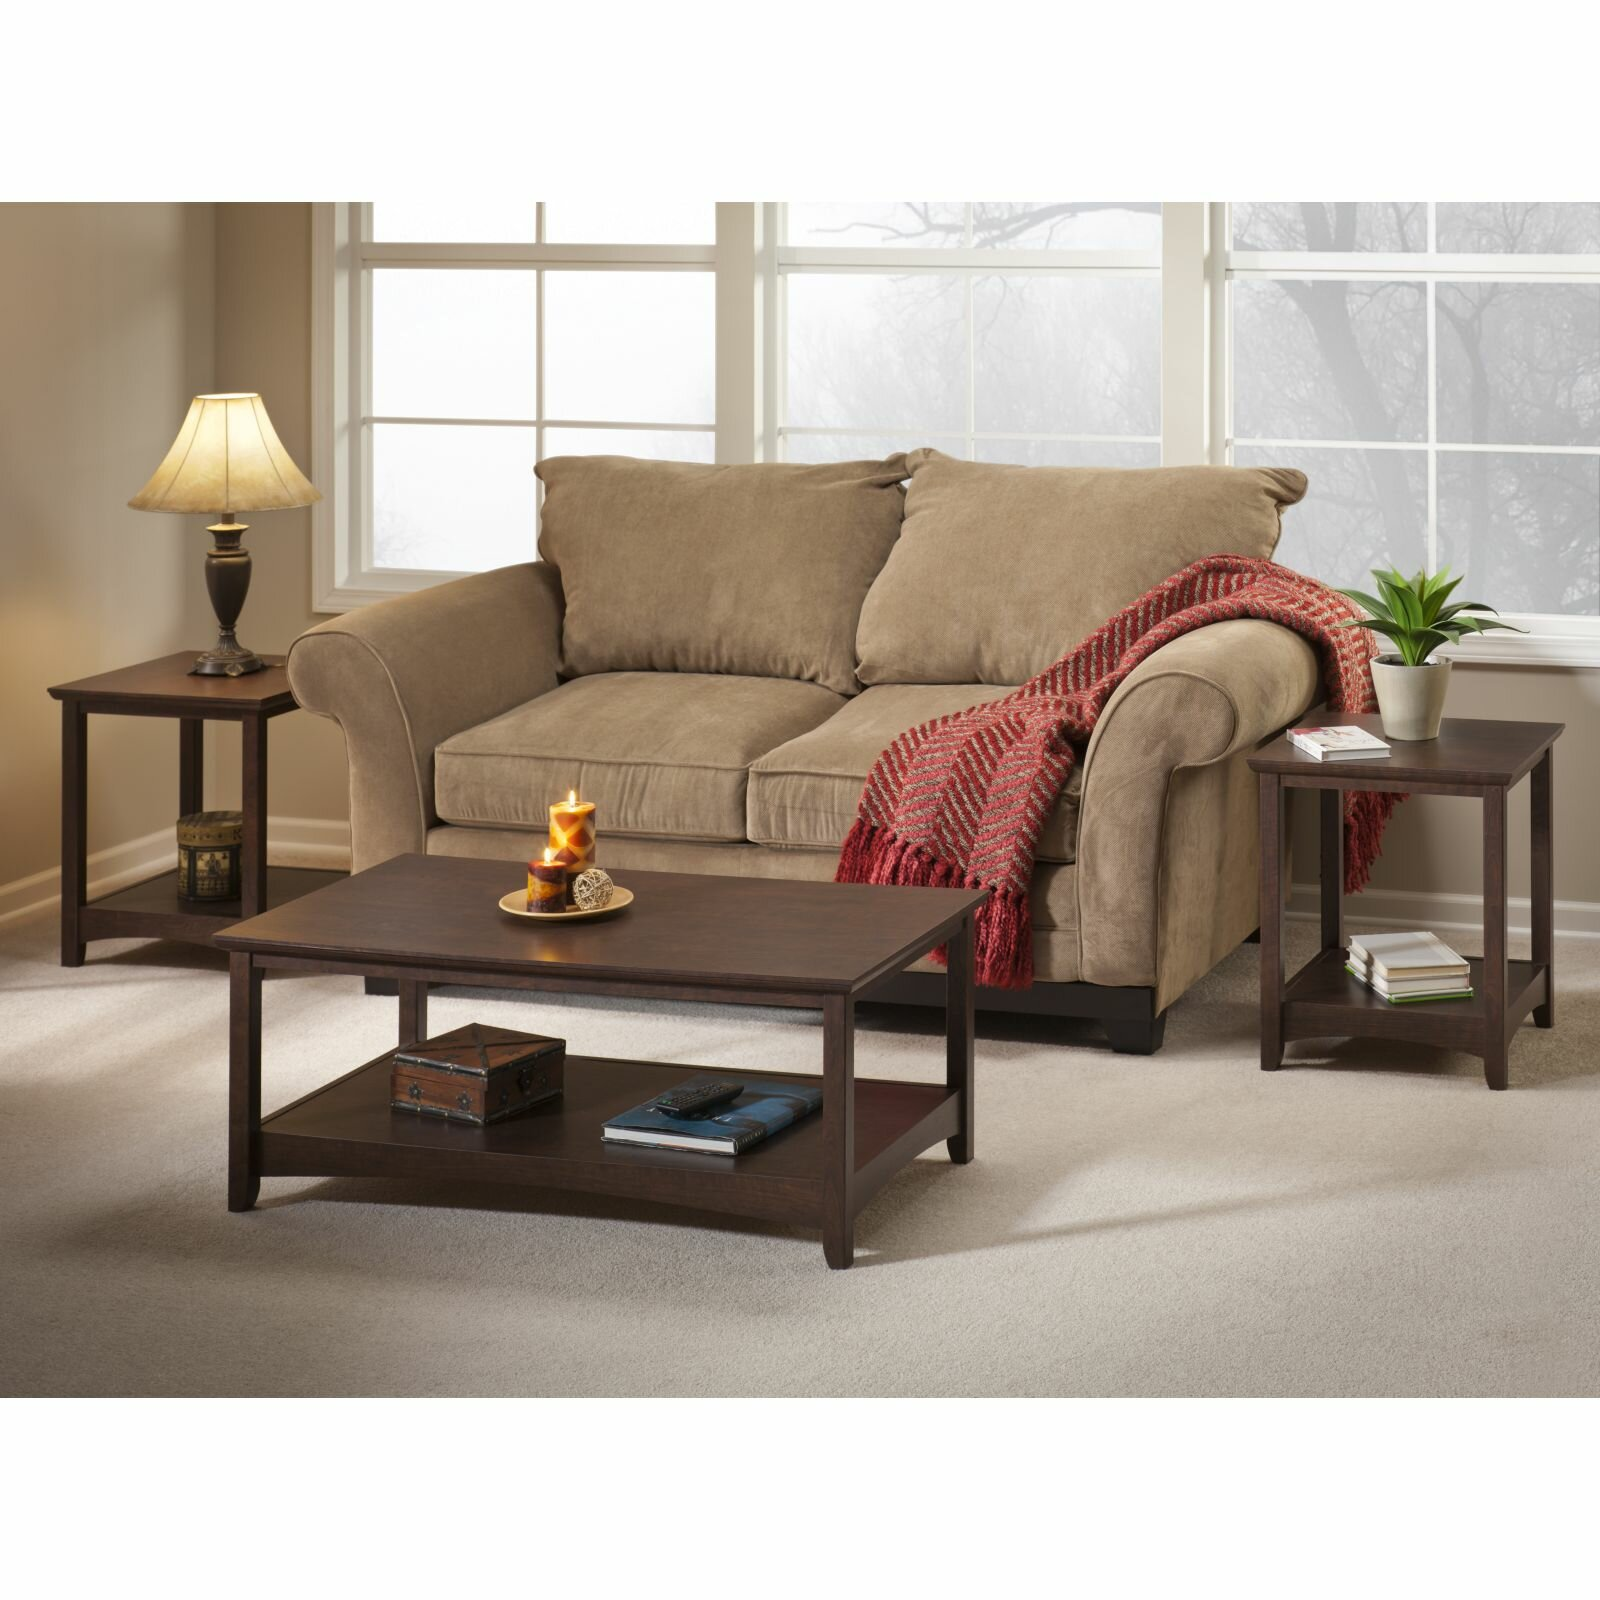 Darby Home Co Egger 3 Piece Coffee Table Set Reviews Wayfair